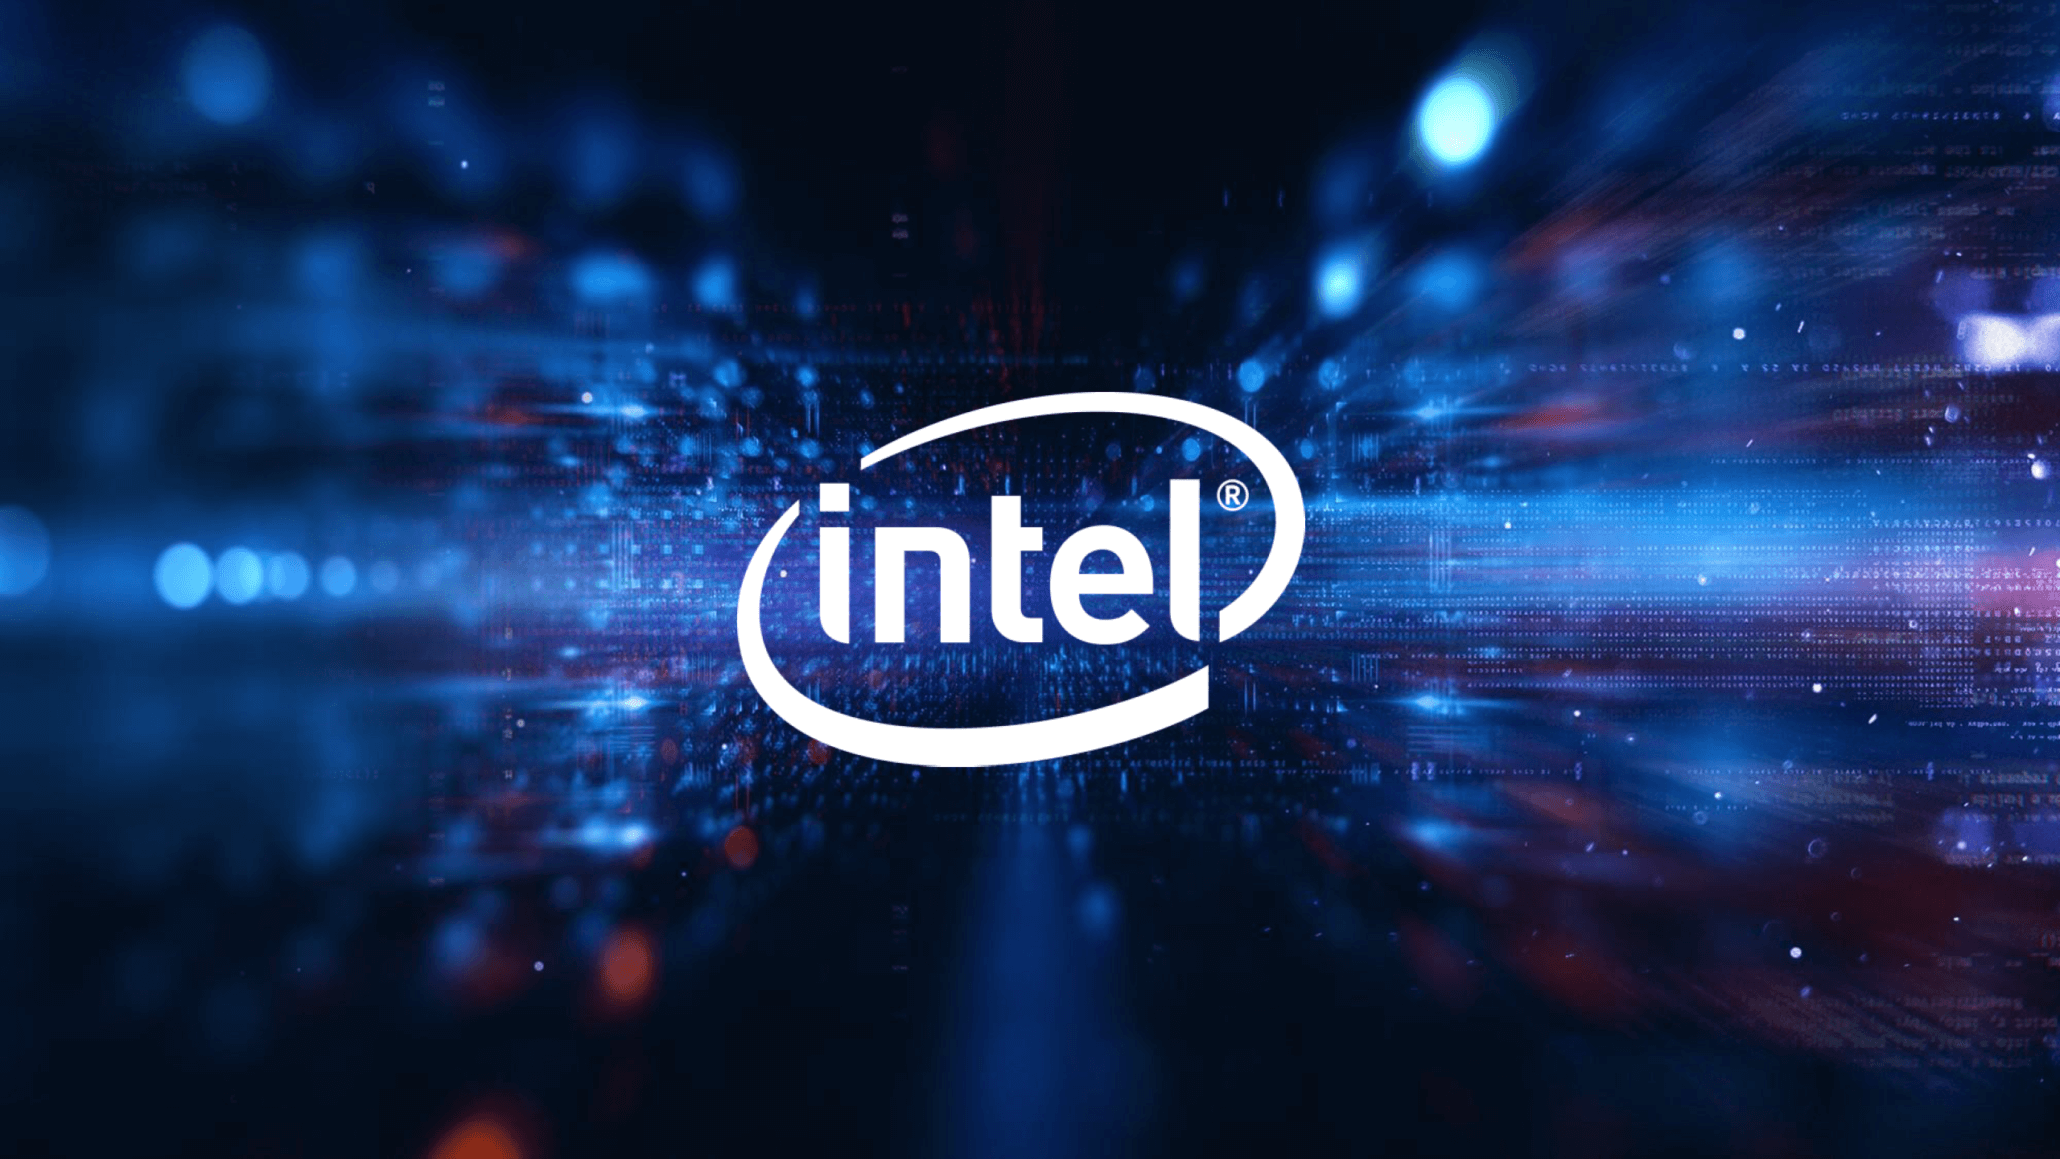 It appears that Intel might have another Comet Lake-S desktop processor in the works, as spotted by TUM_APISAK. The core i9-10900K is currently the fa